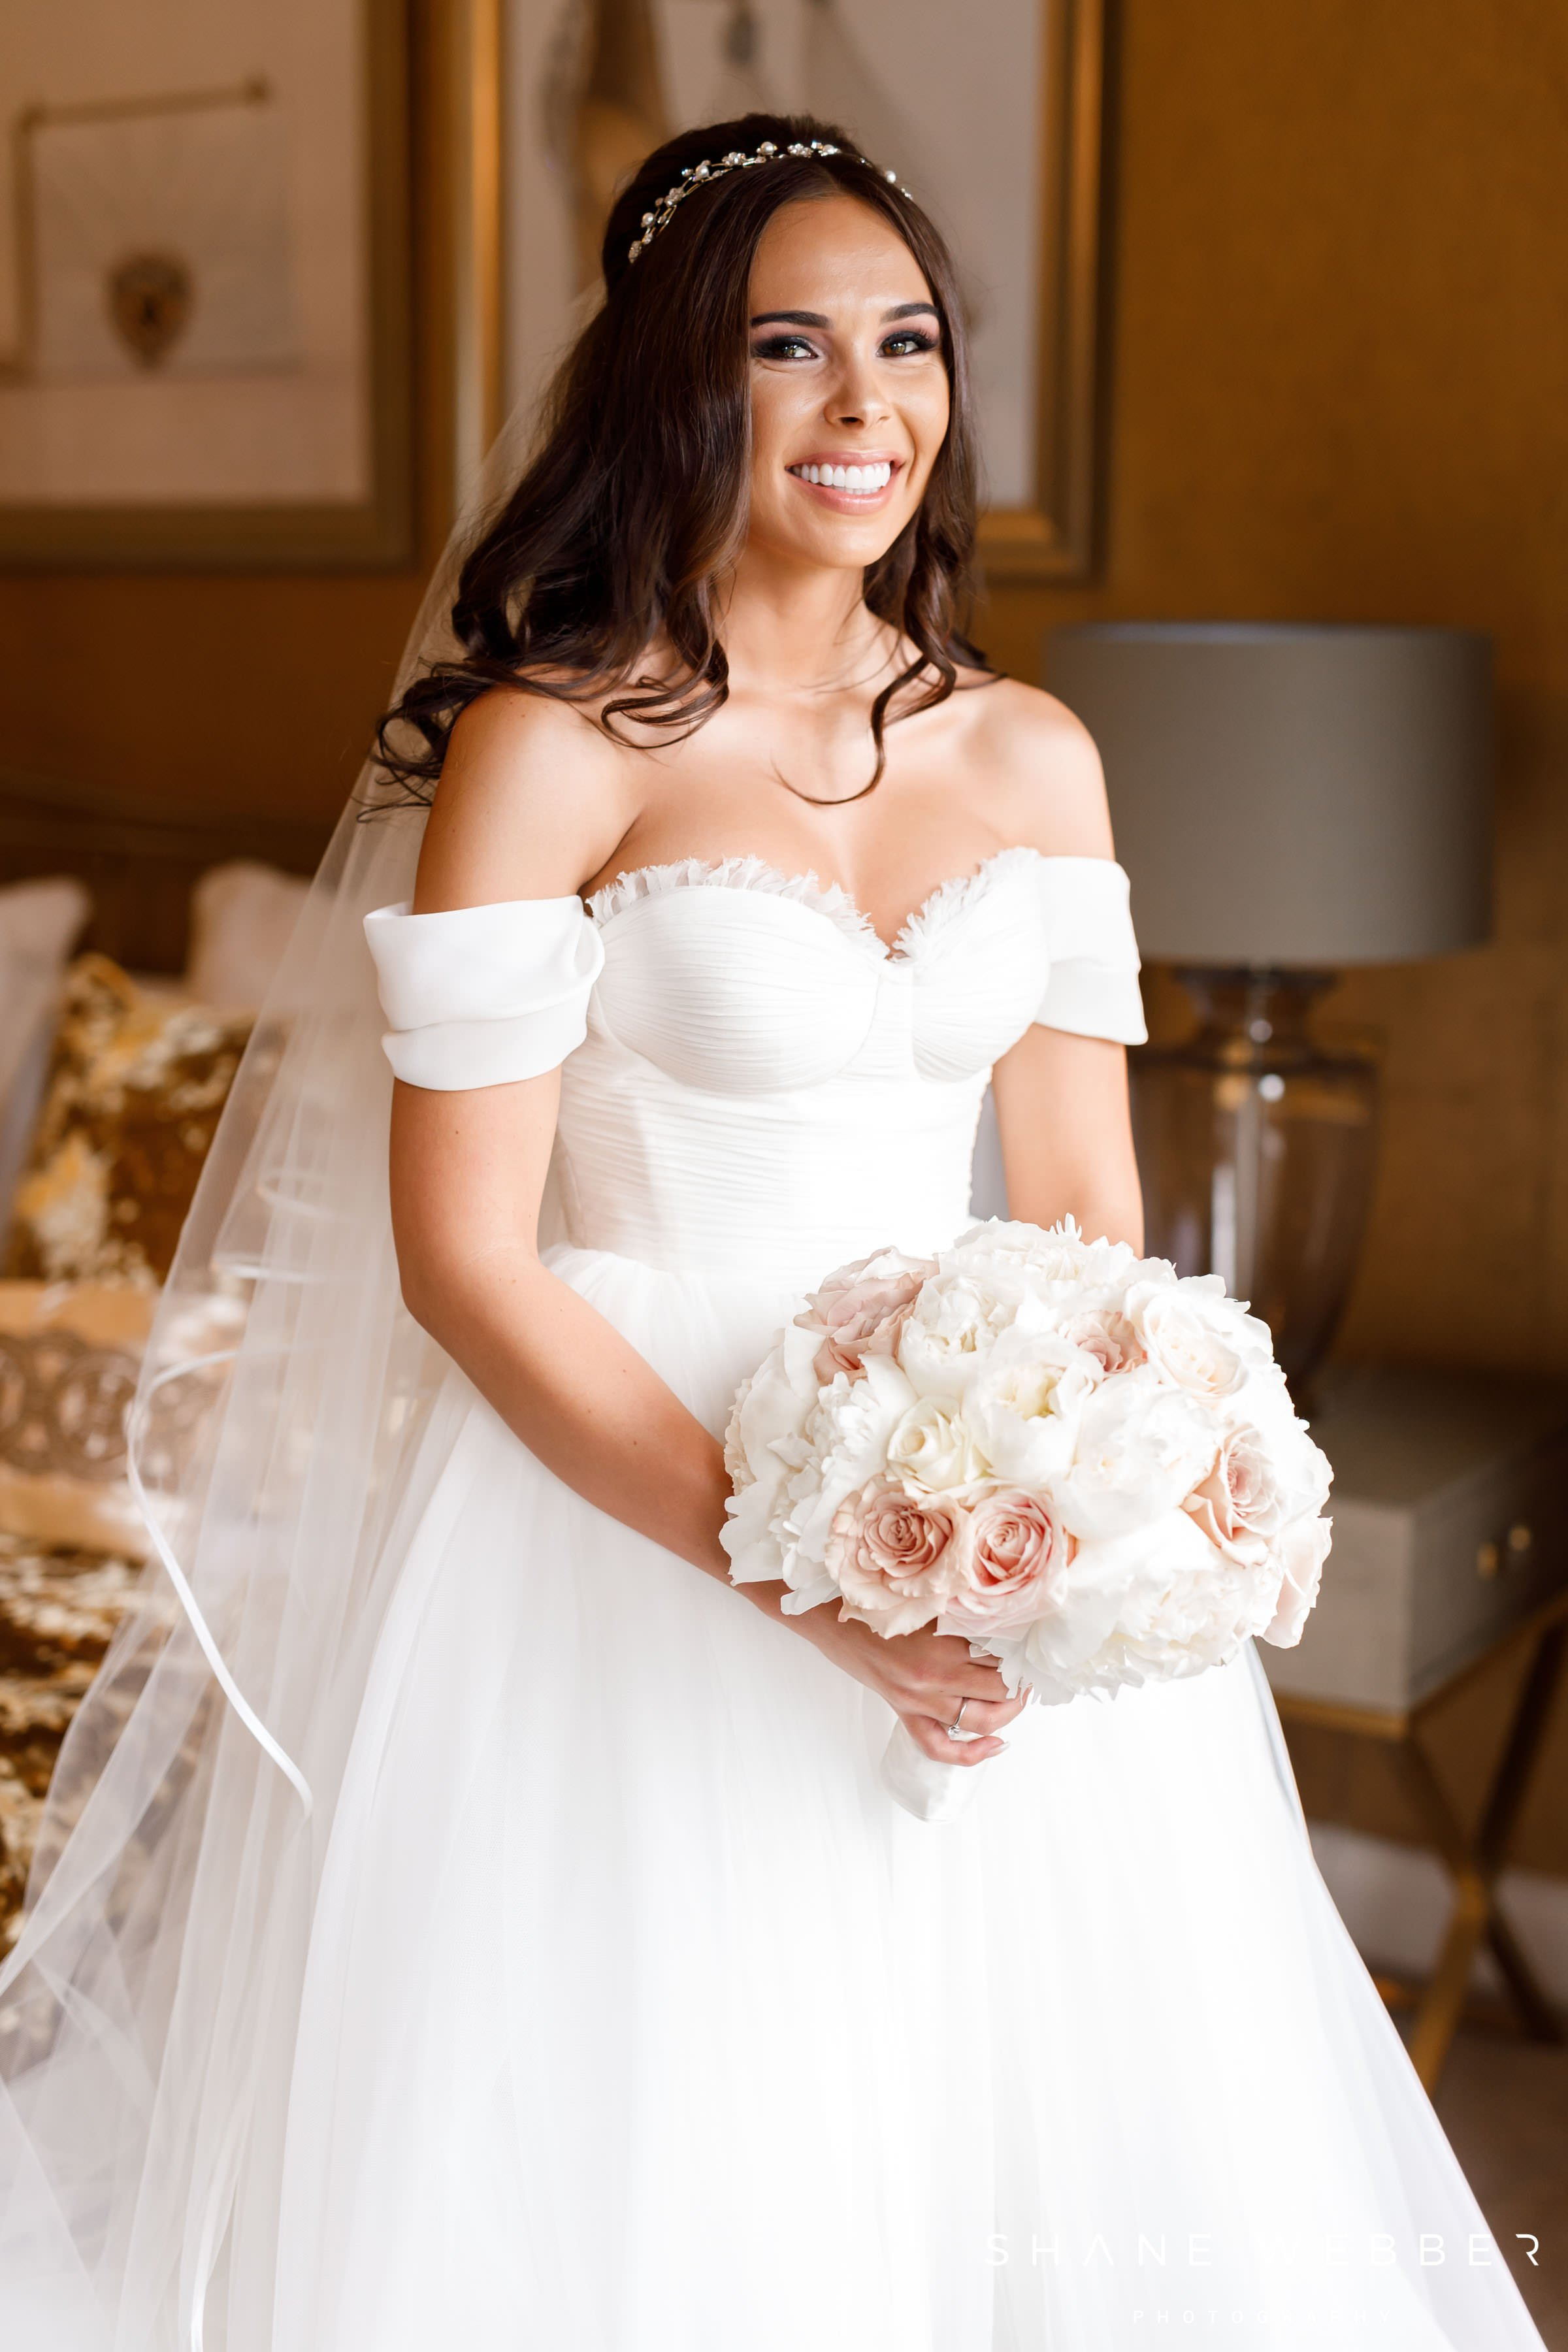 Pronovias wedding dress with Lily Rose Events bouquet